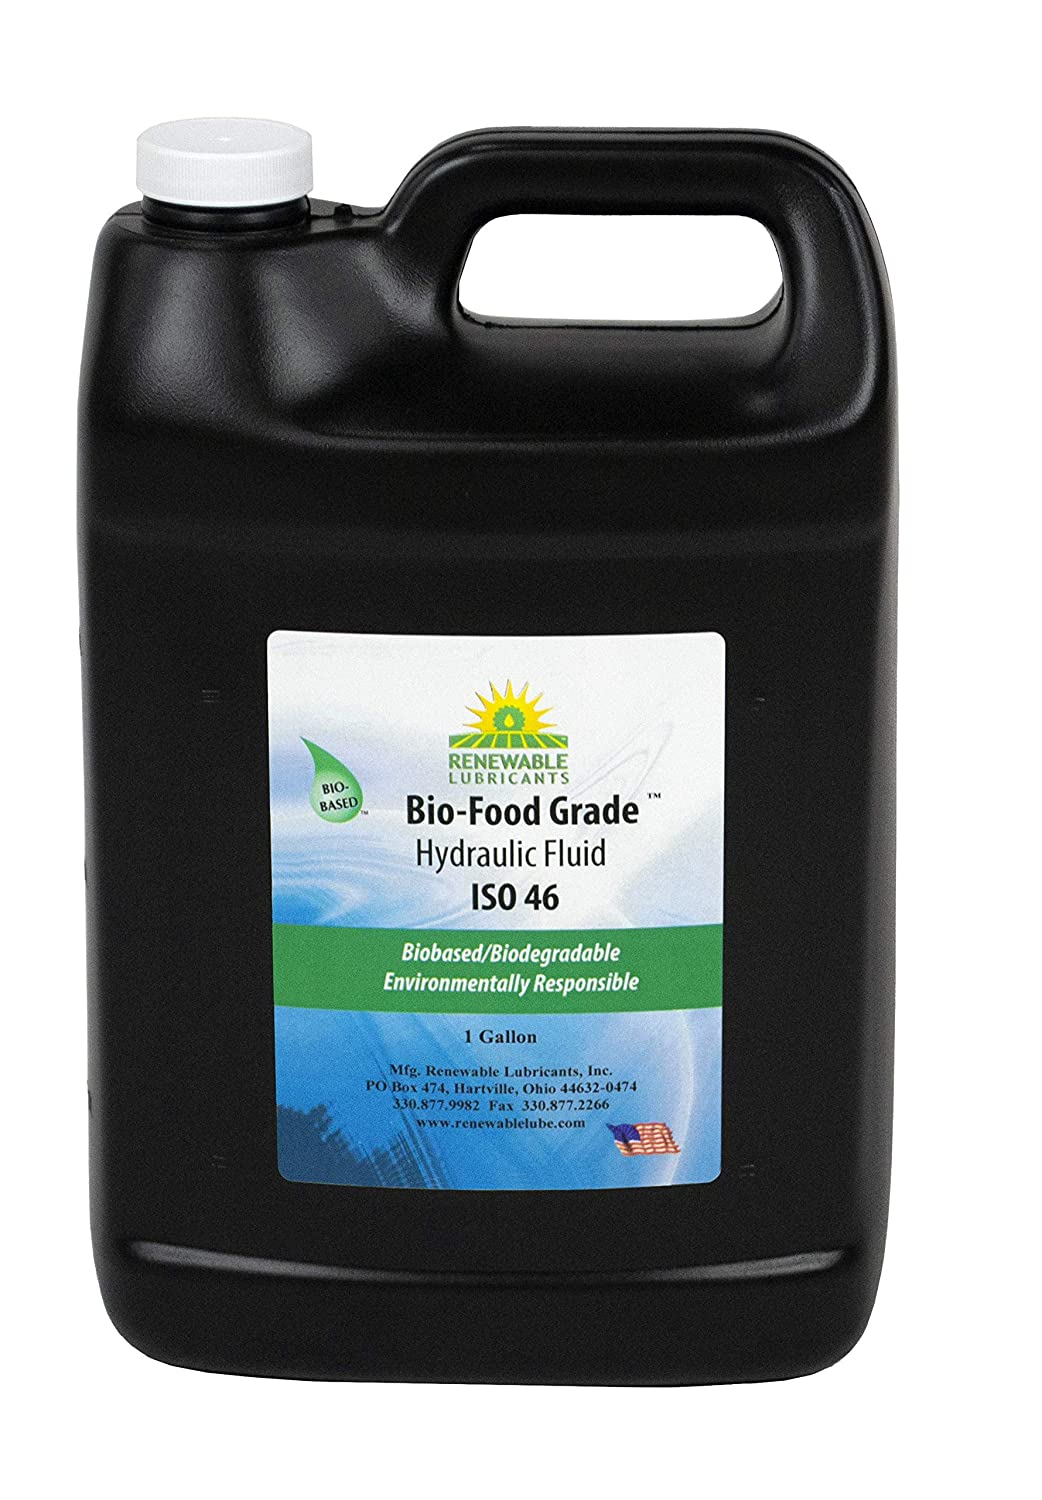 Bio-Food Grade Hydraulic Fluid, 1 gal, ISO 46, 87133